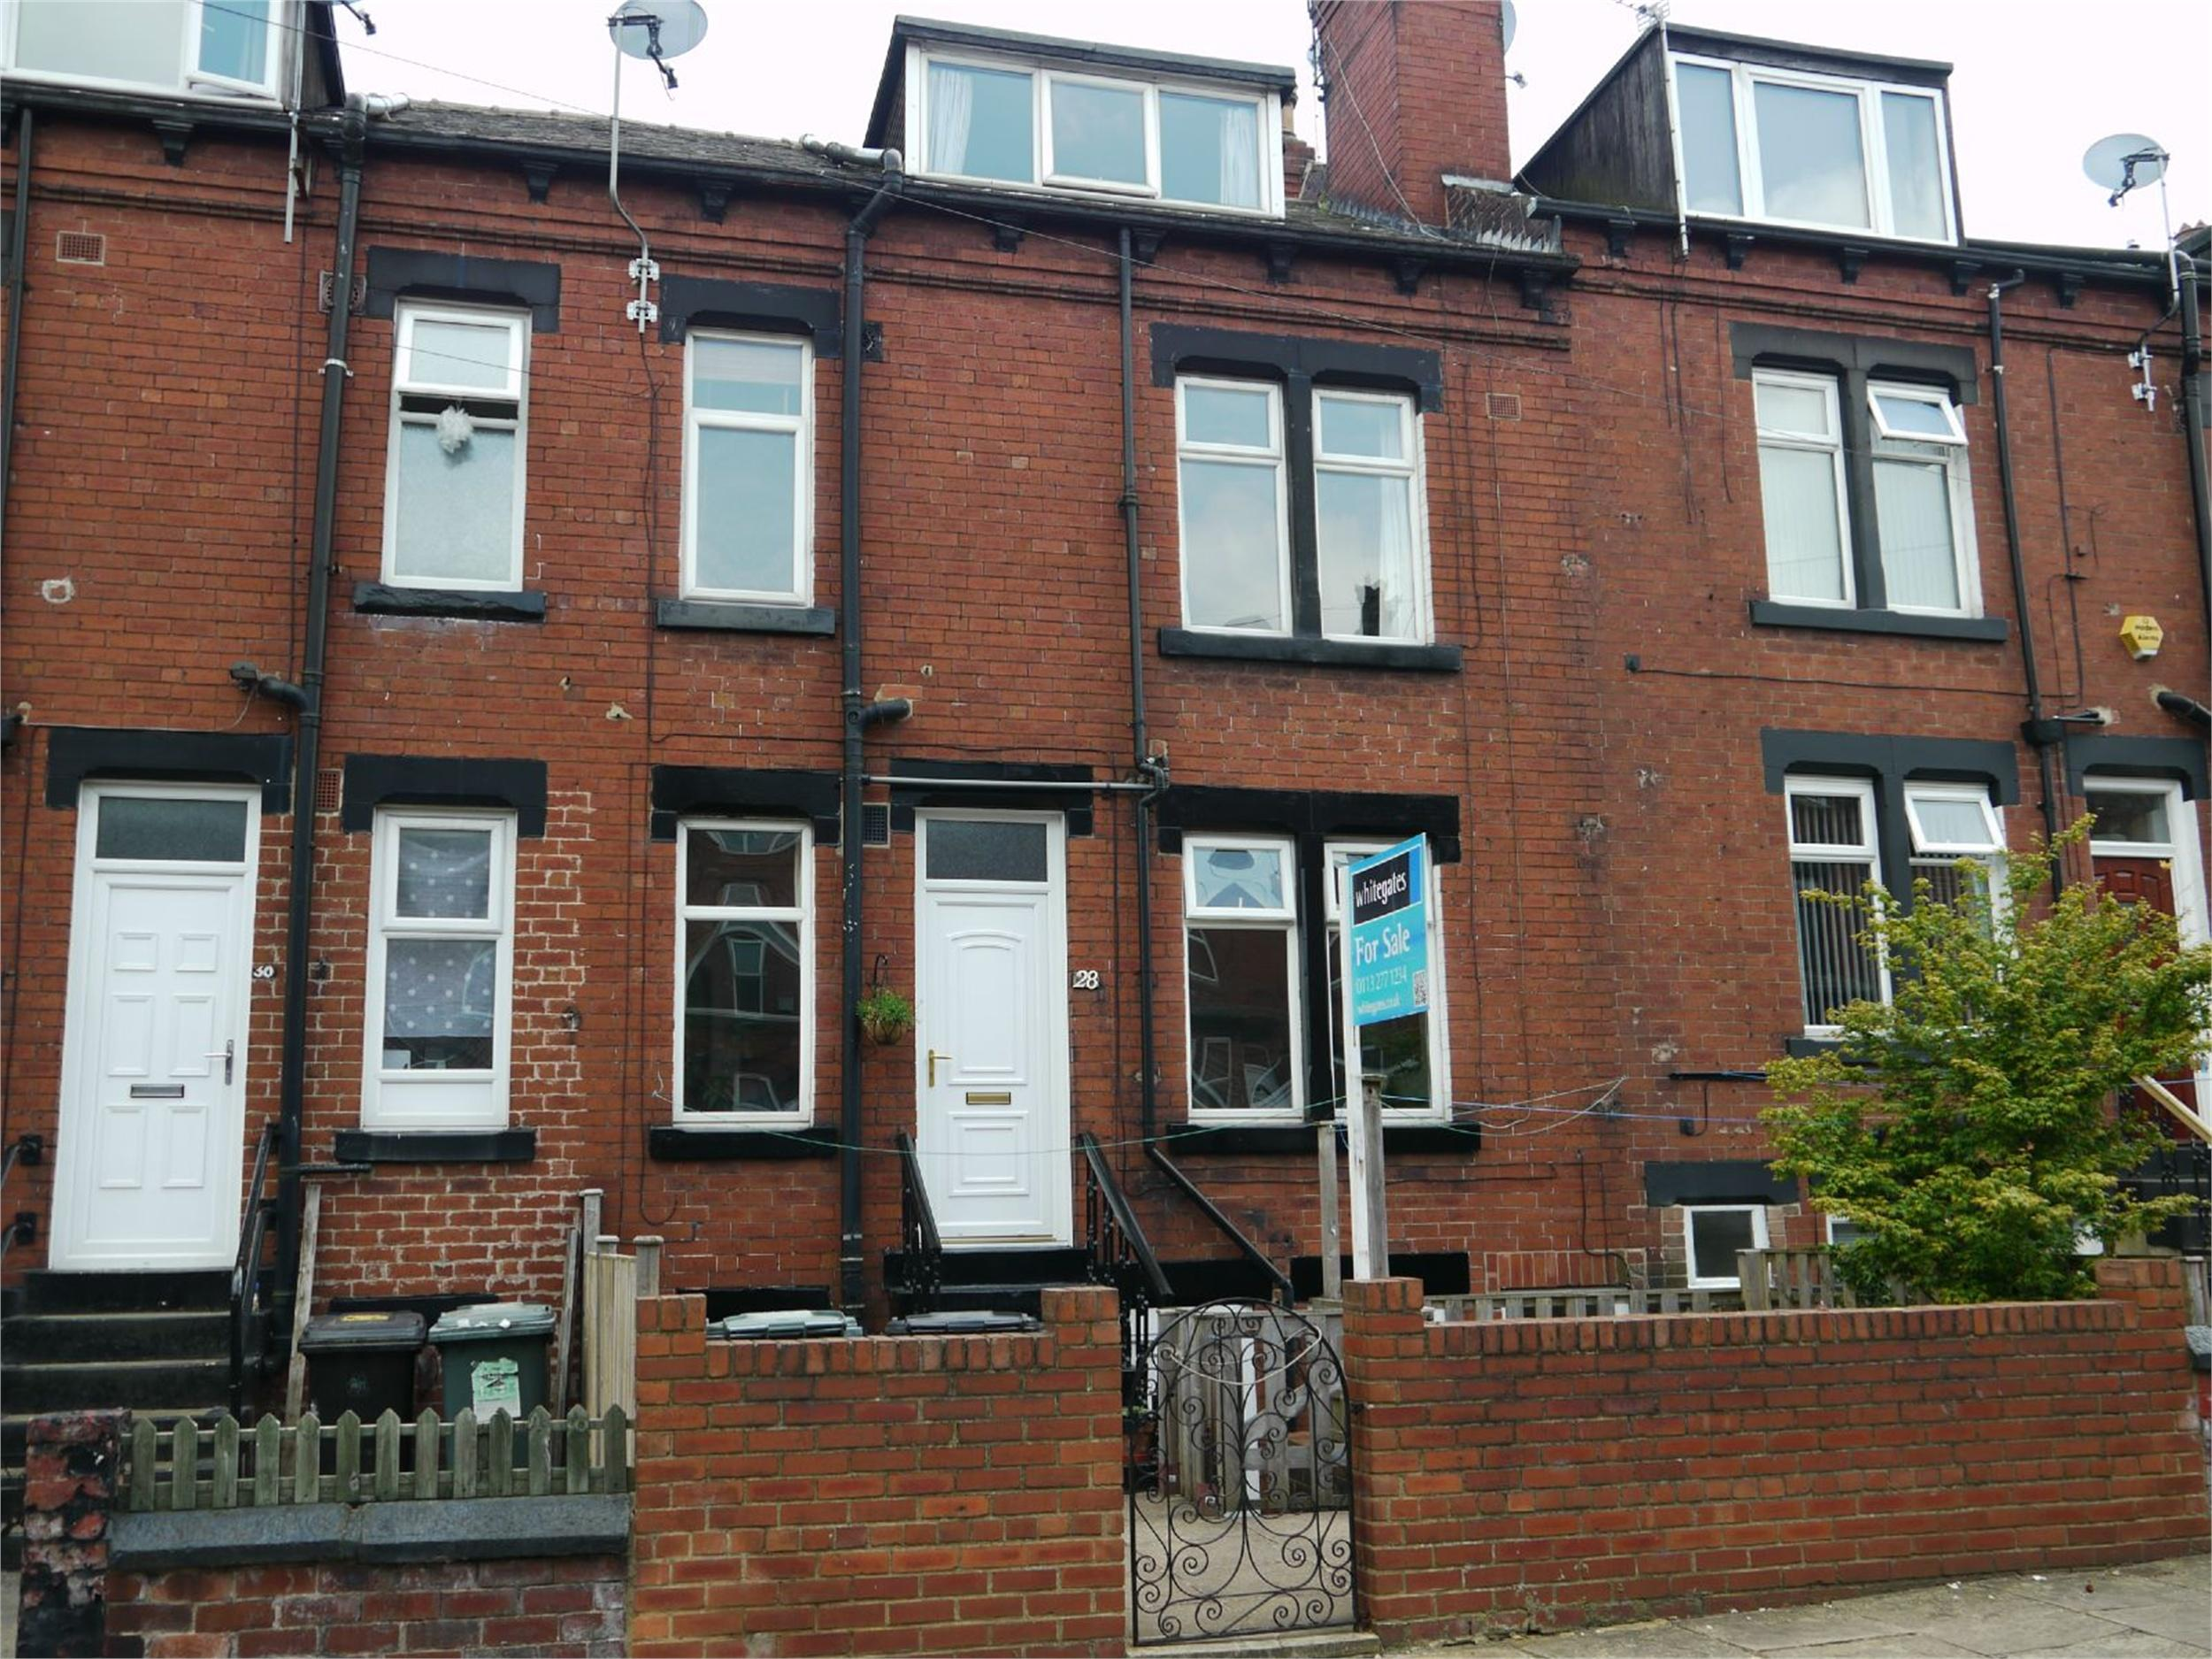 Yorkshire Terrace: Whitegates South Leeds 2 Bedroom House For Sale In